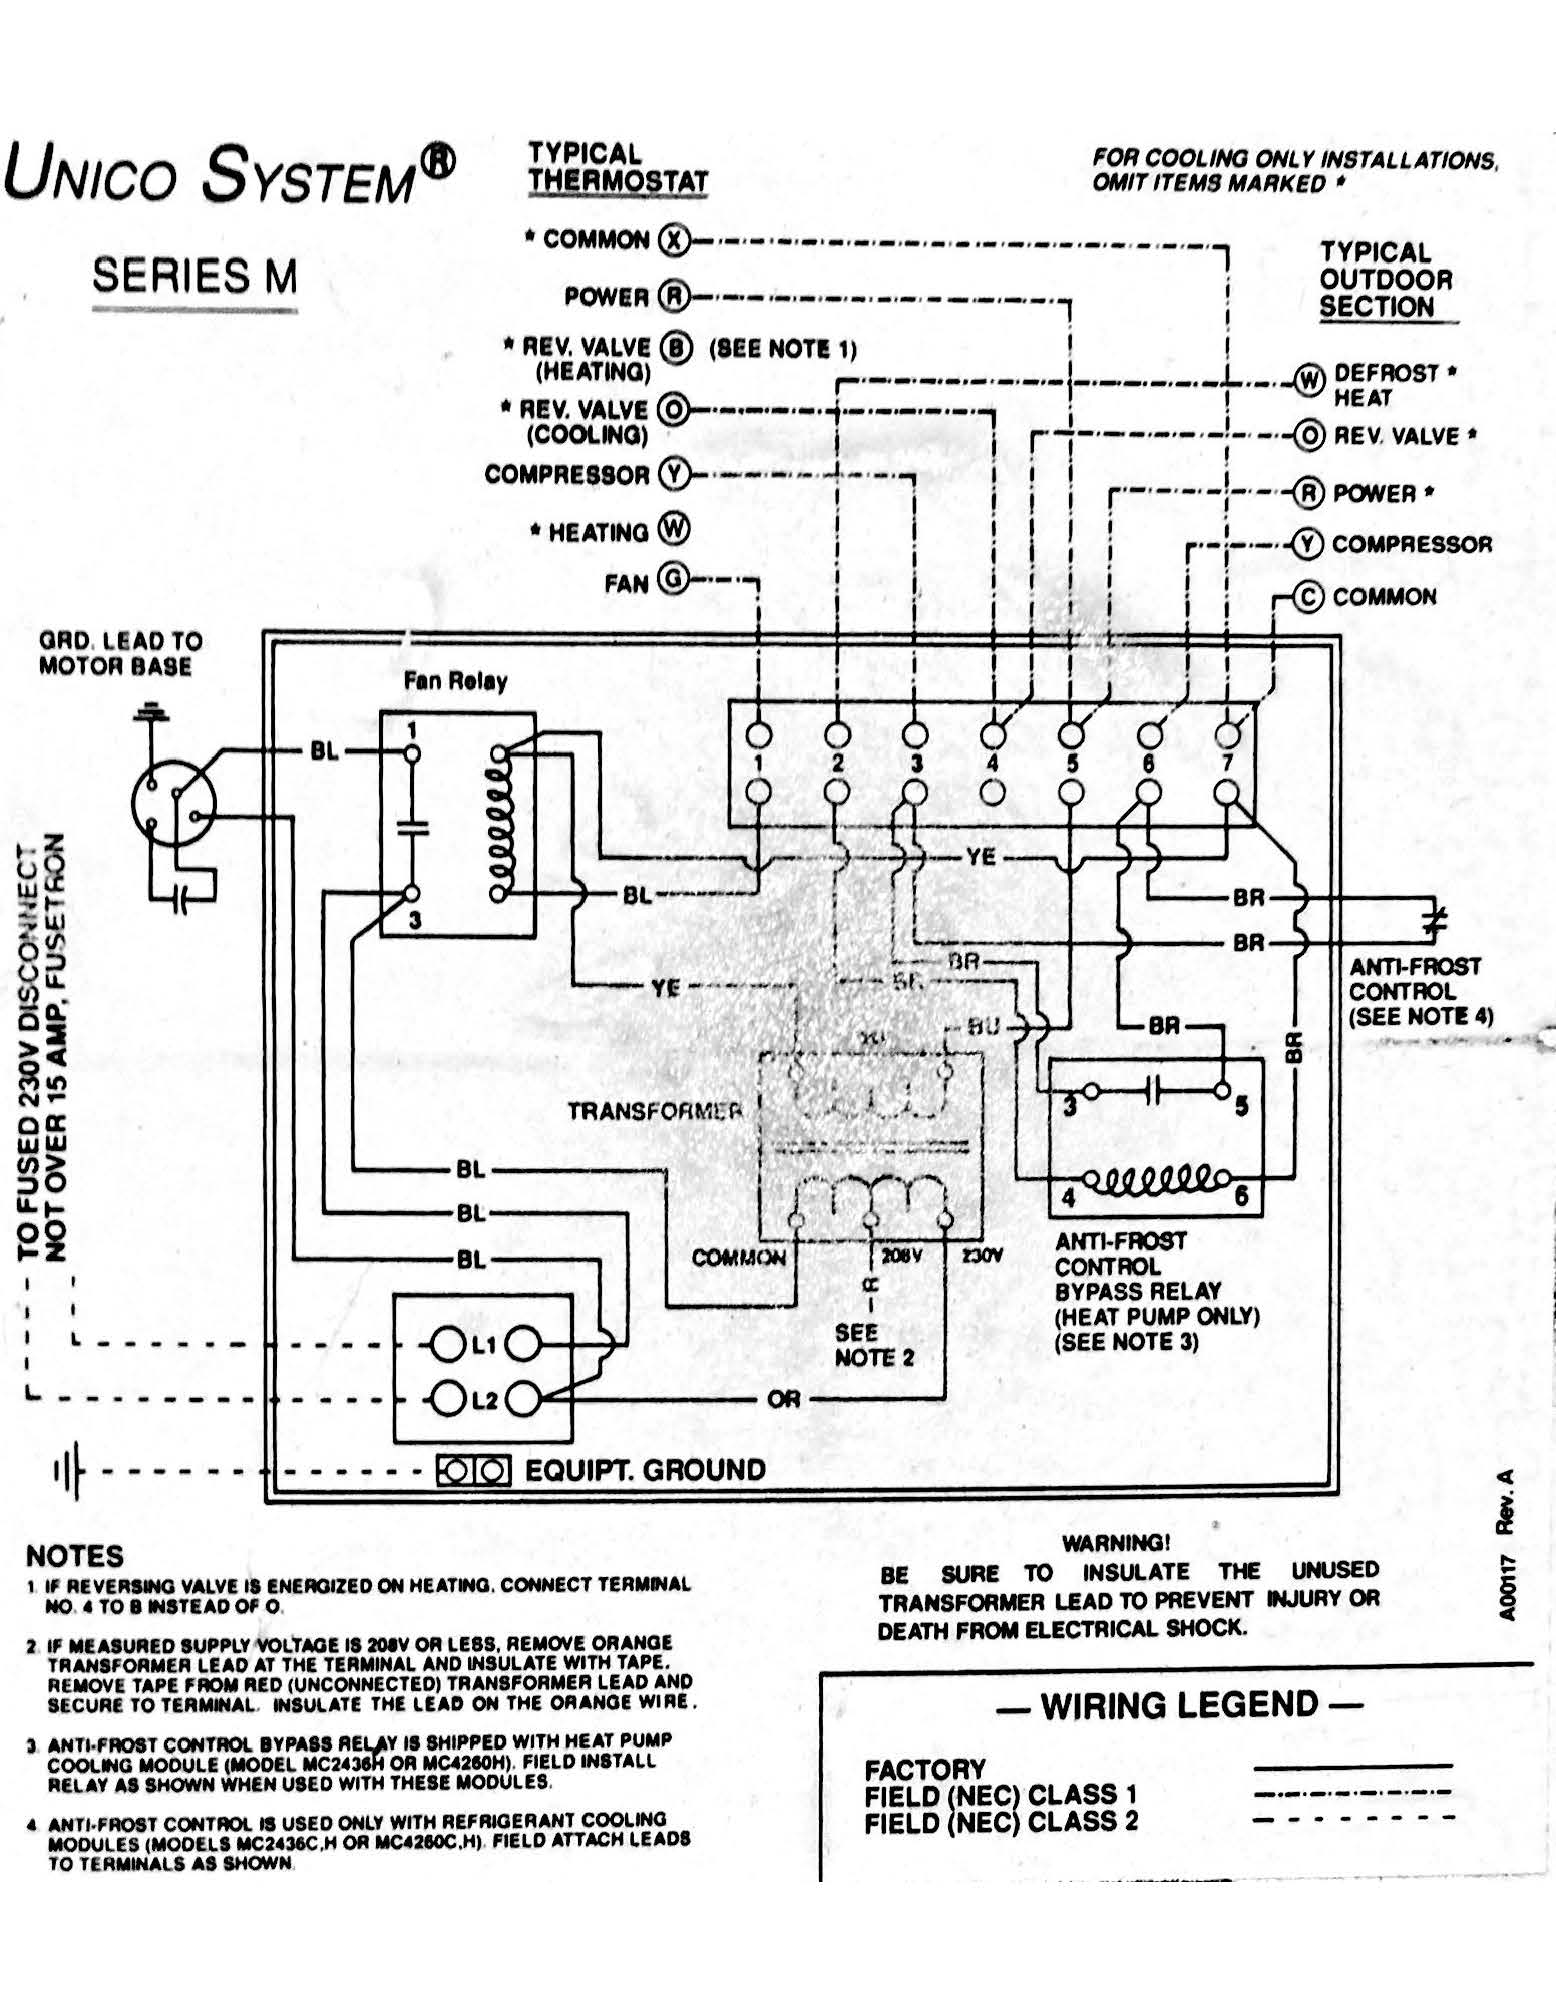 unico air handler wiring diagram